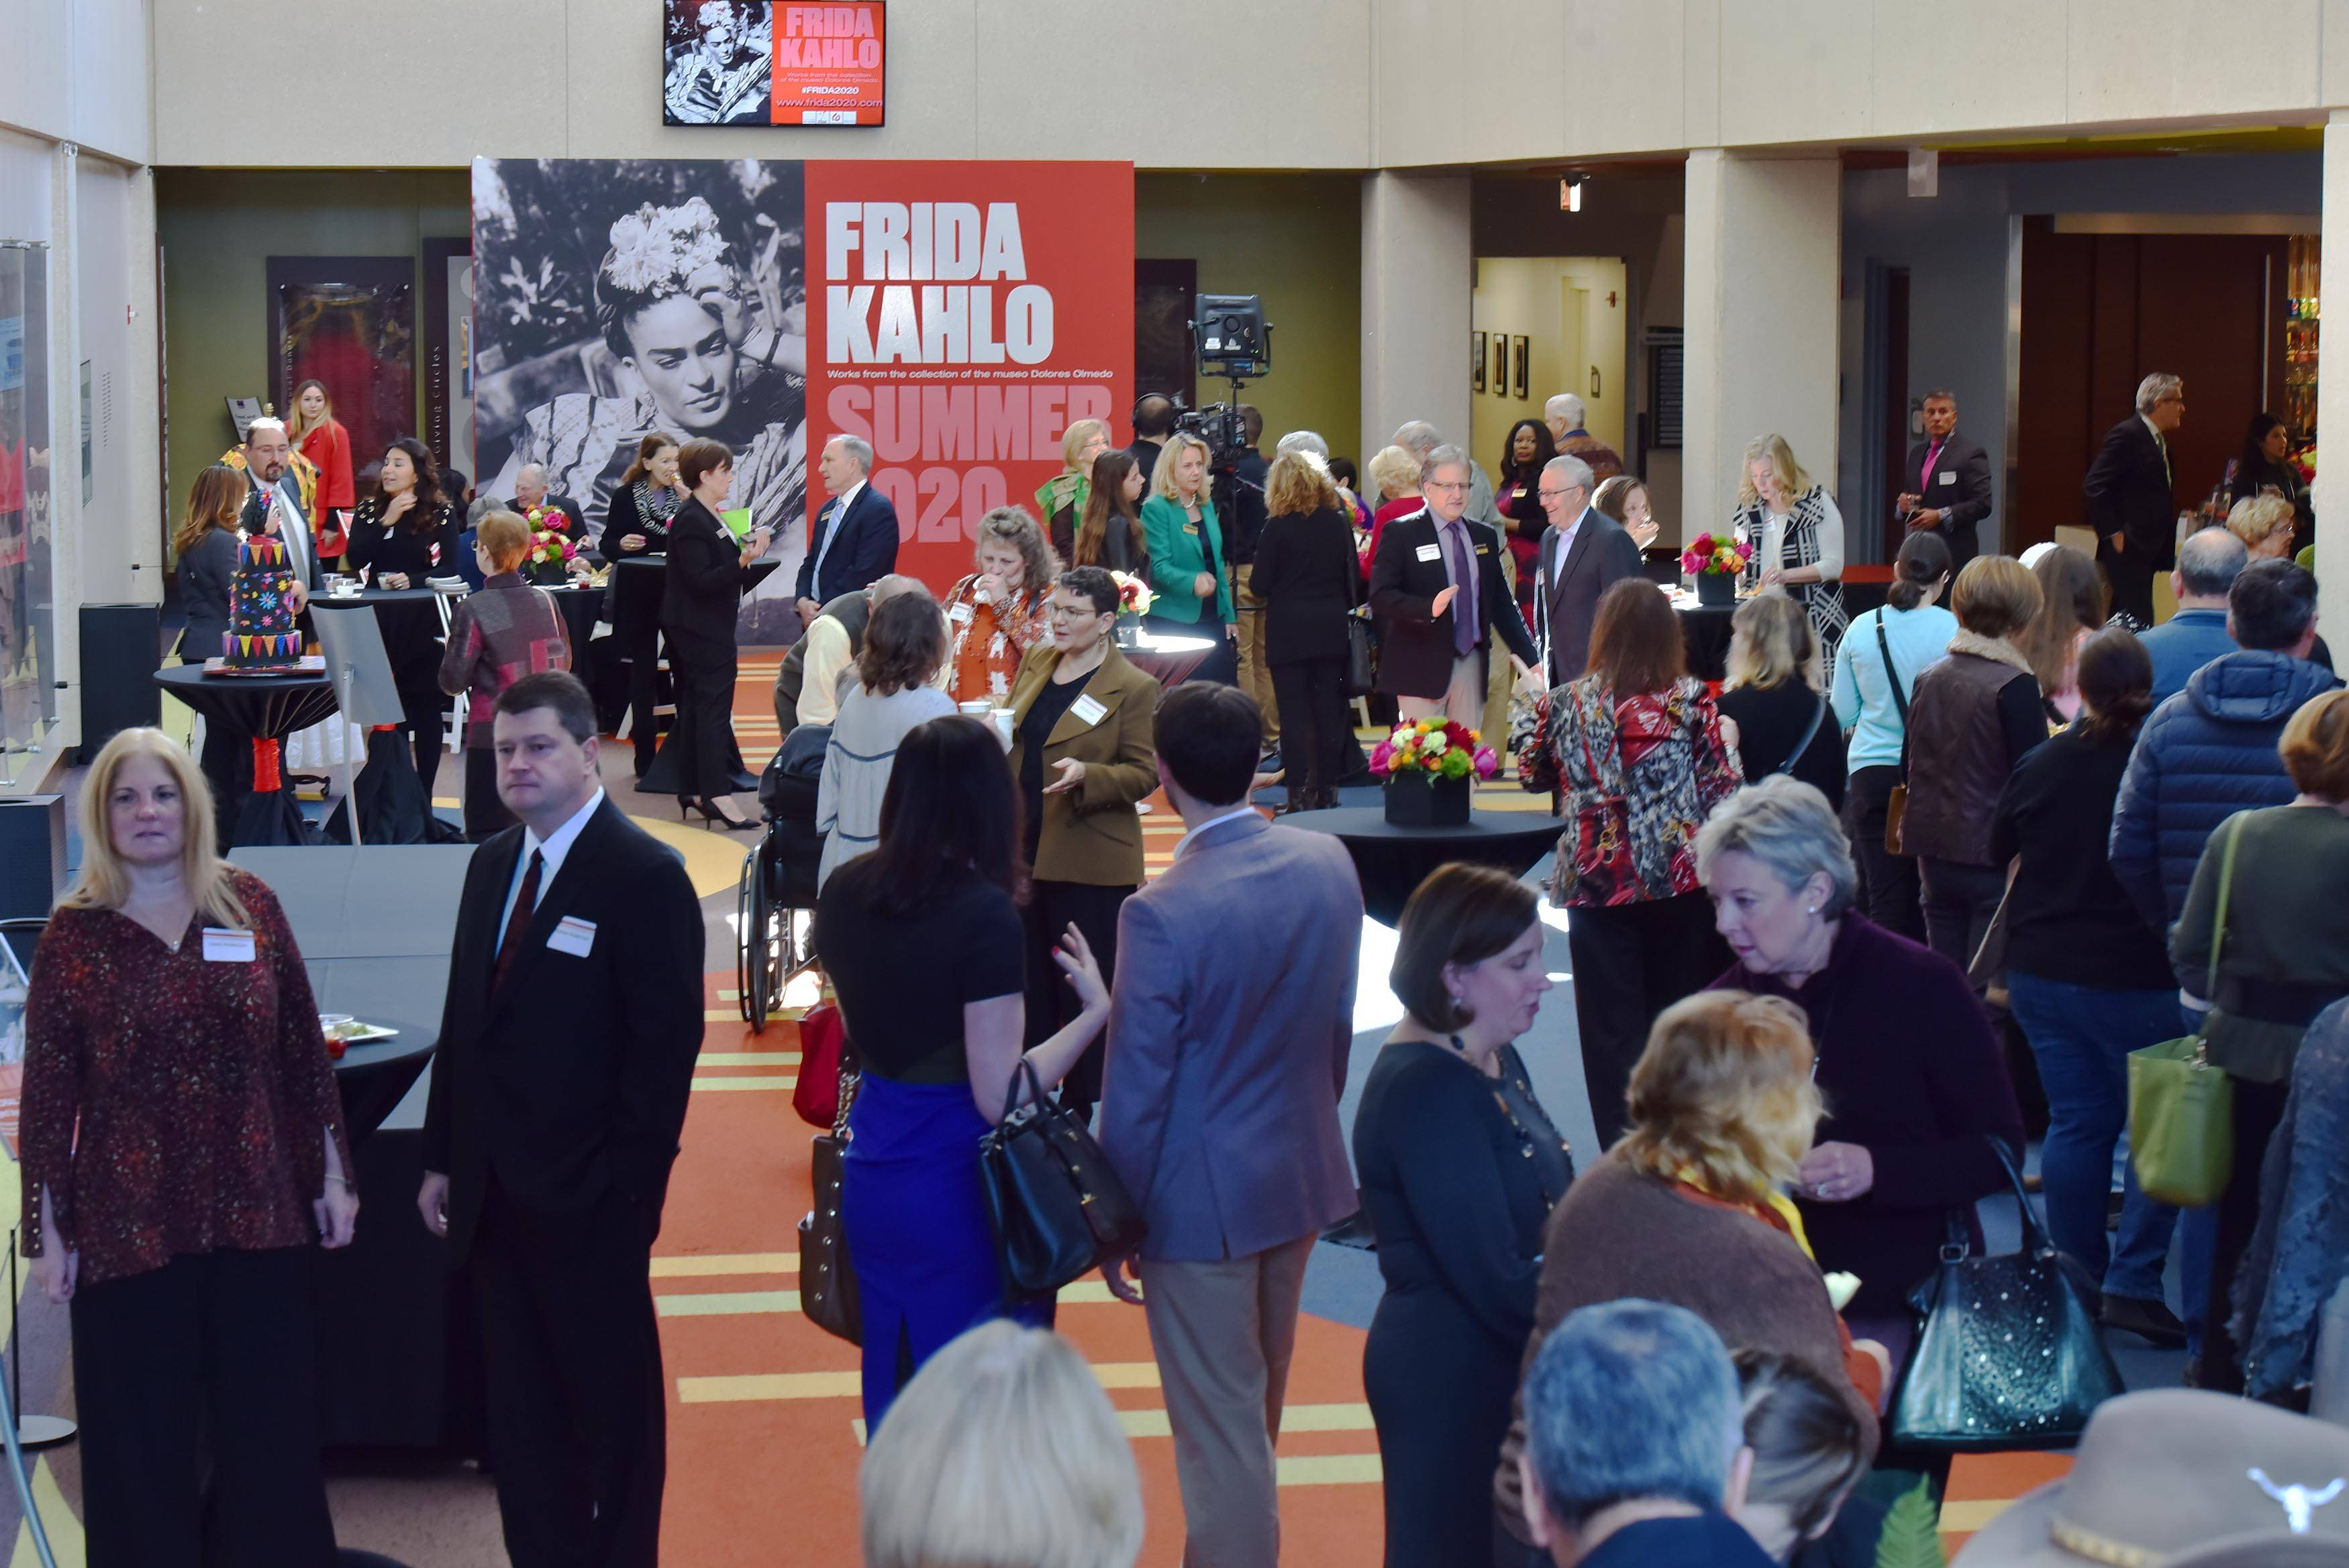 Guests enjoy a reception before the College of DuPage announces plans for a new Frida Kahlo art exhibition at the McAninch Arts Center in Glen Ellyn Saturday.